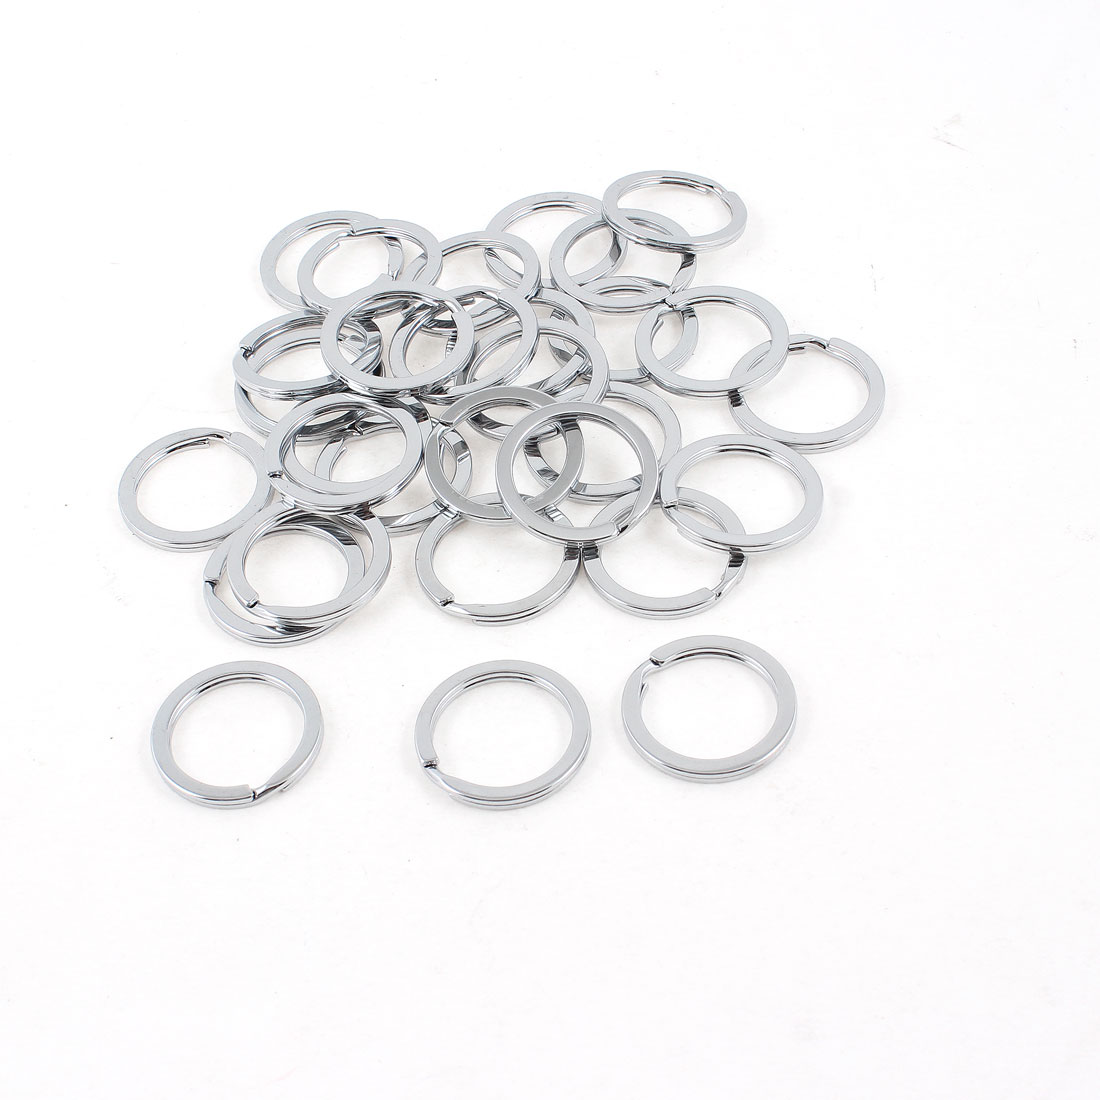 25mm OD Silver Tone Metal Split Loop Key Rings Holders 30 Pcs